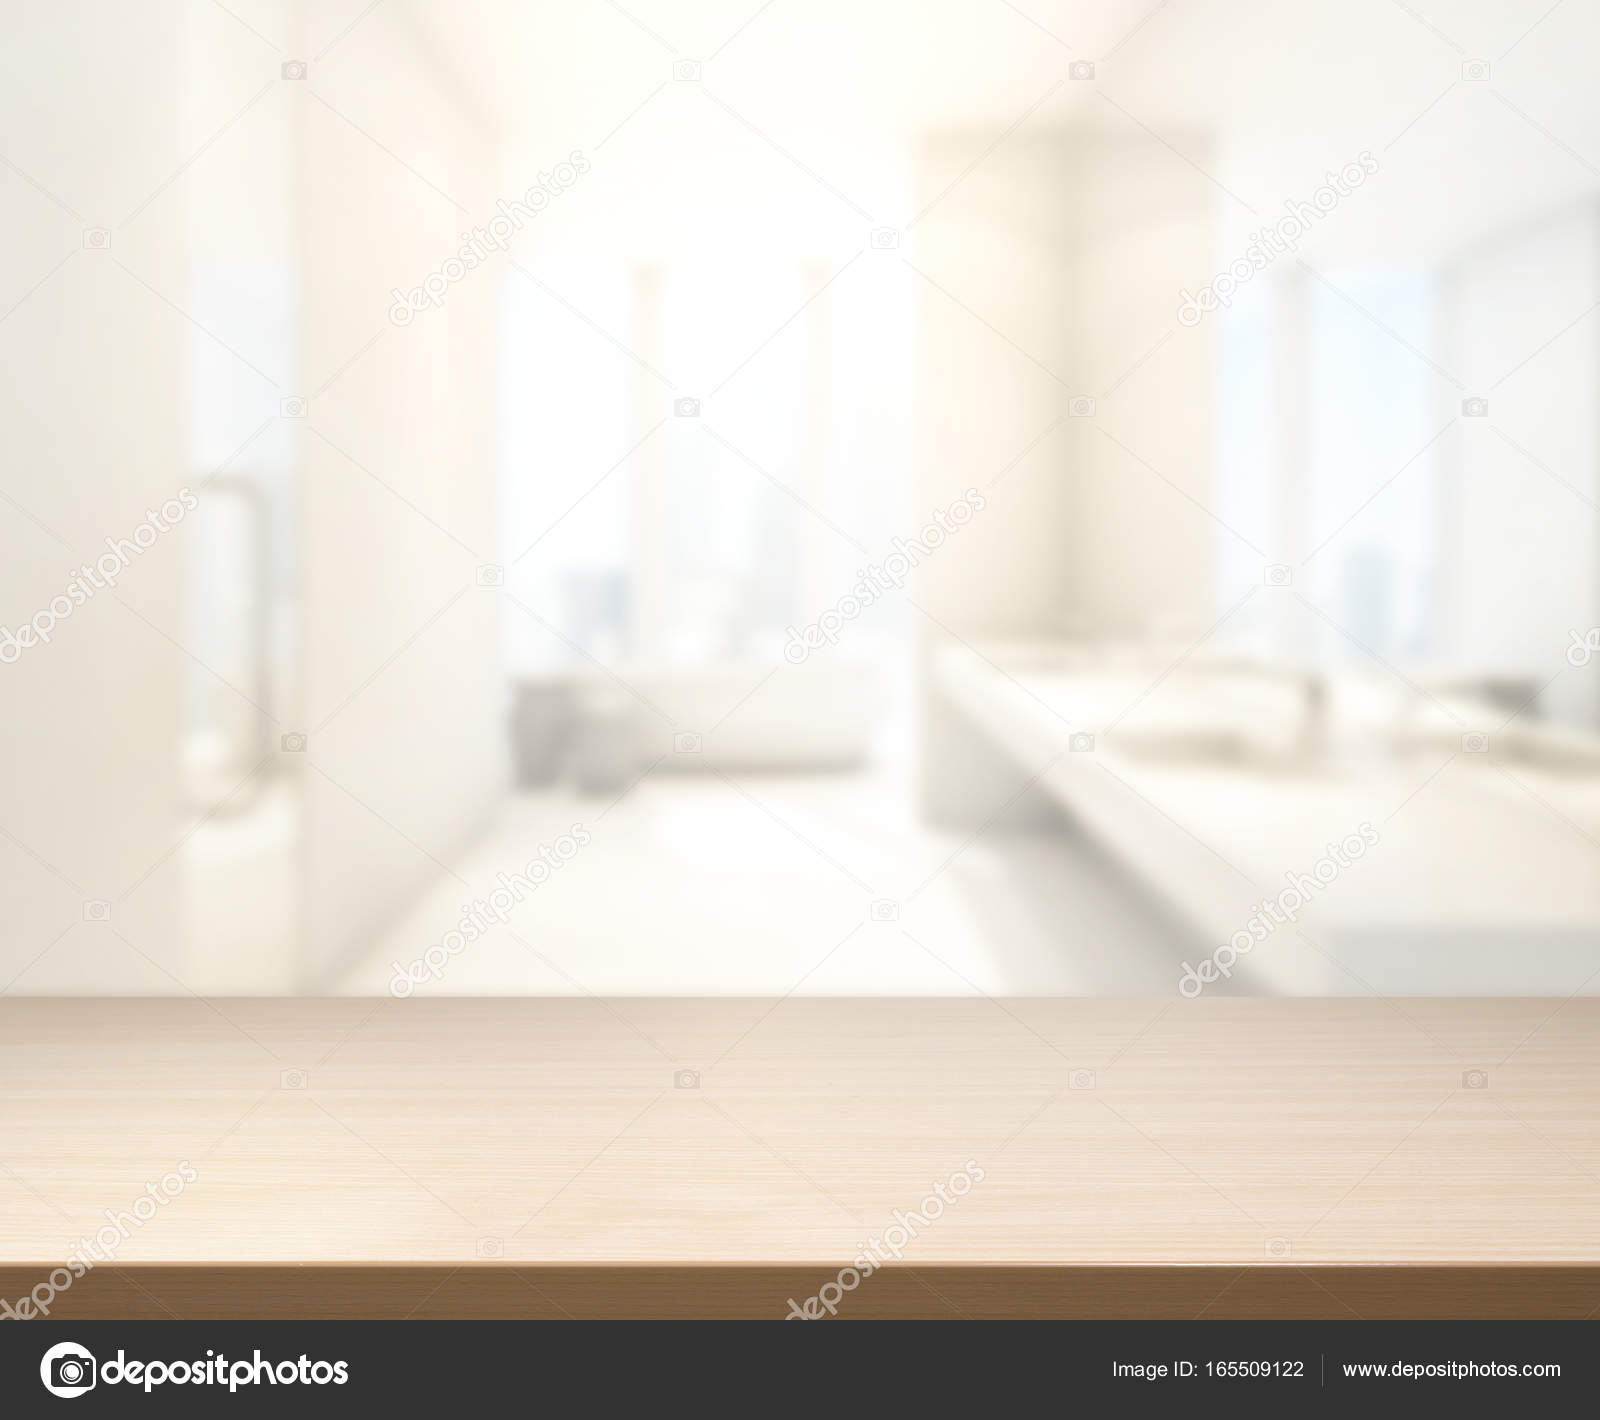 Table Top And Blur Bathroom Of Background Stock Photo